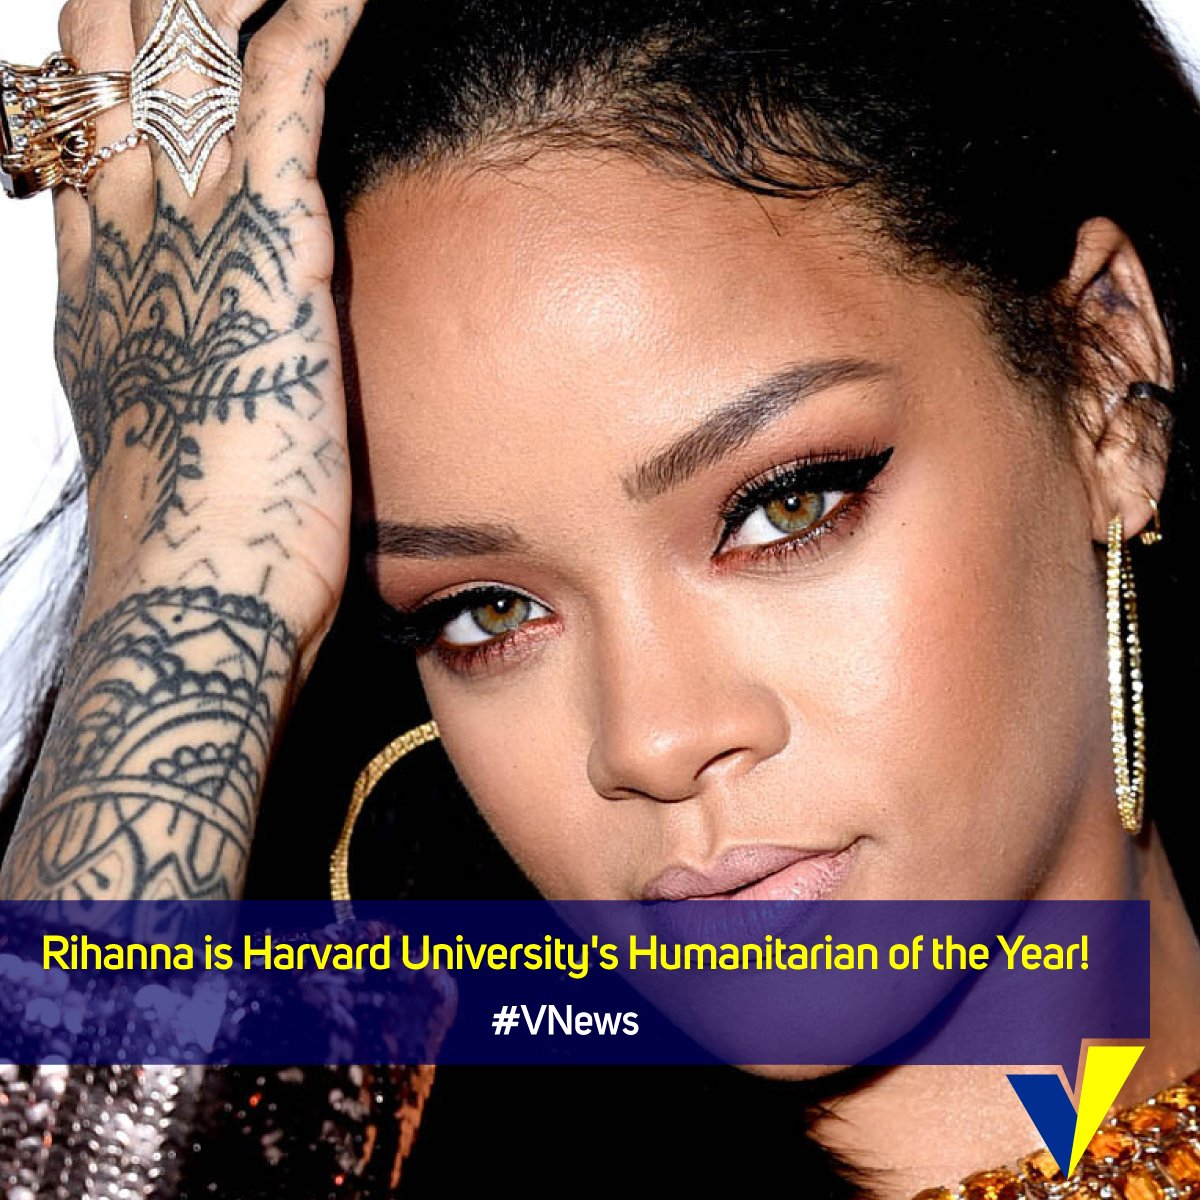 Calling all the @Rihanna fans! Another feather in her cap. Any excited...